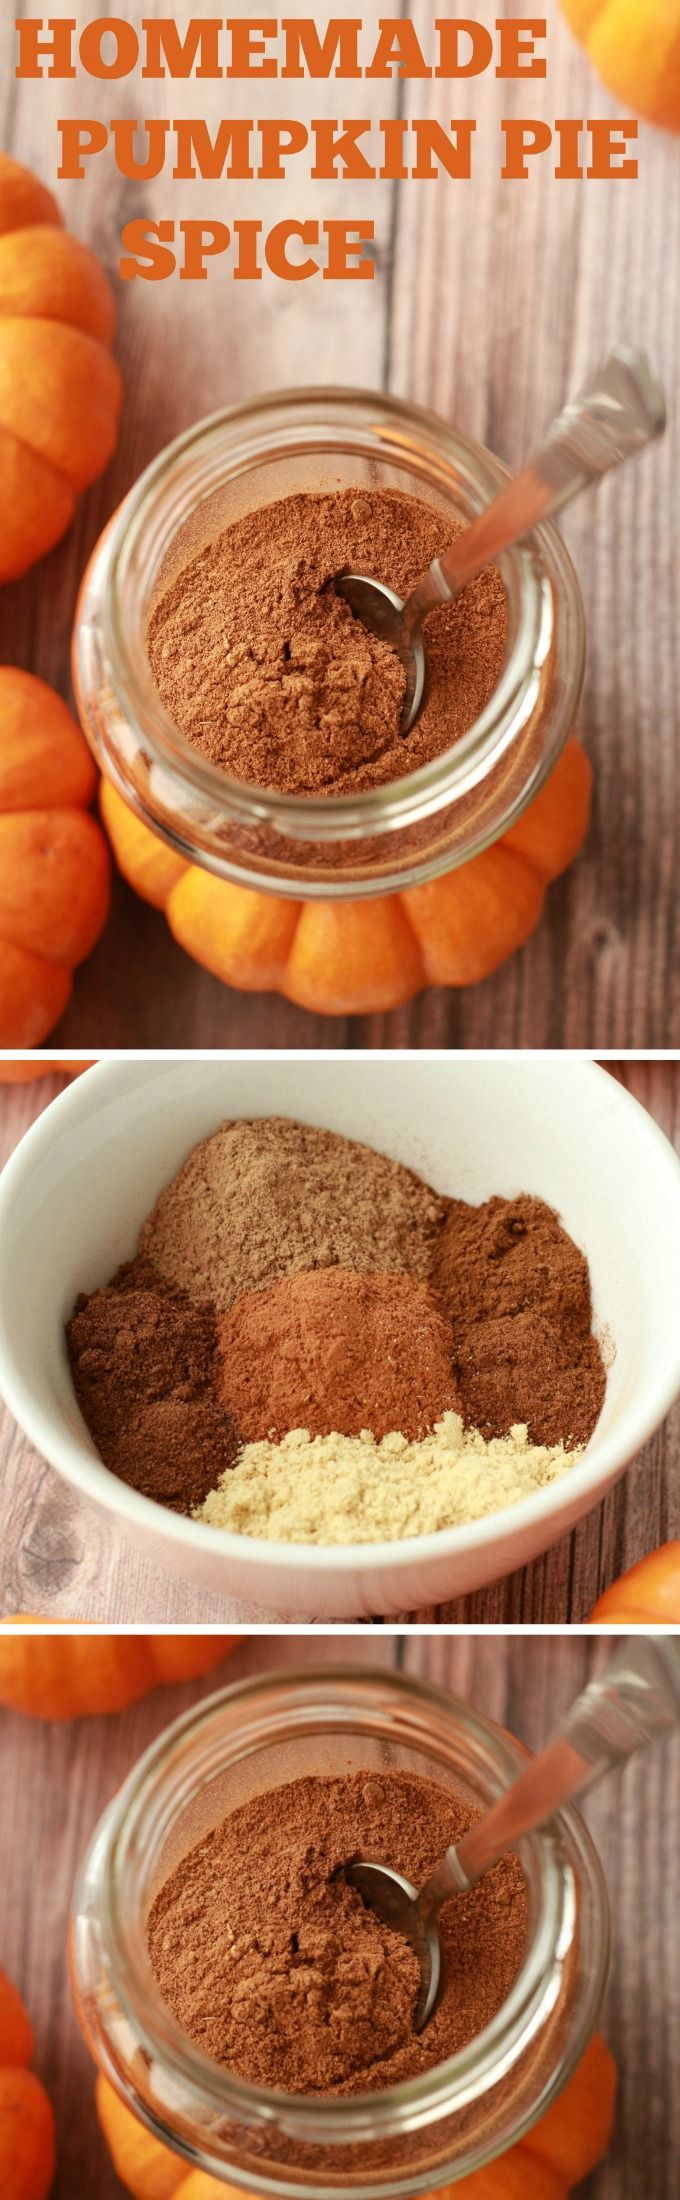 Easy 5-ingredient pumpkin pie spice recipe! Perfect for fall recipes, like pumpkin pies, pumpkin spice lattes, pumpkin smoothies and pancakes!